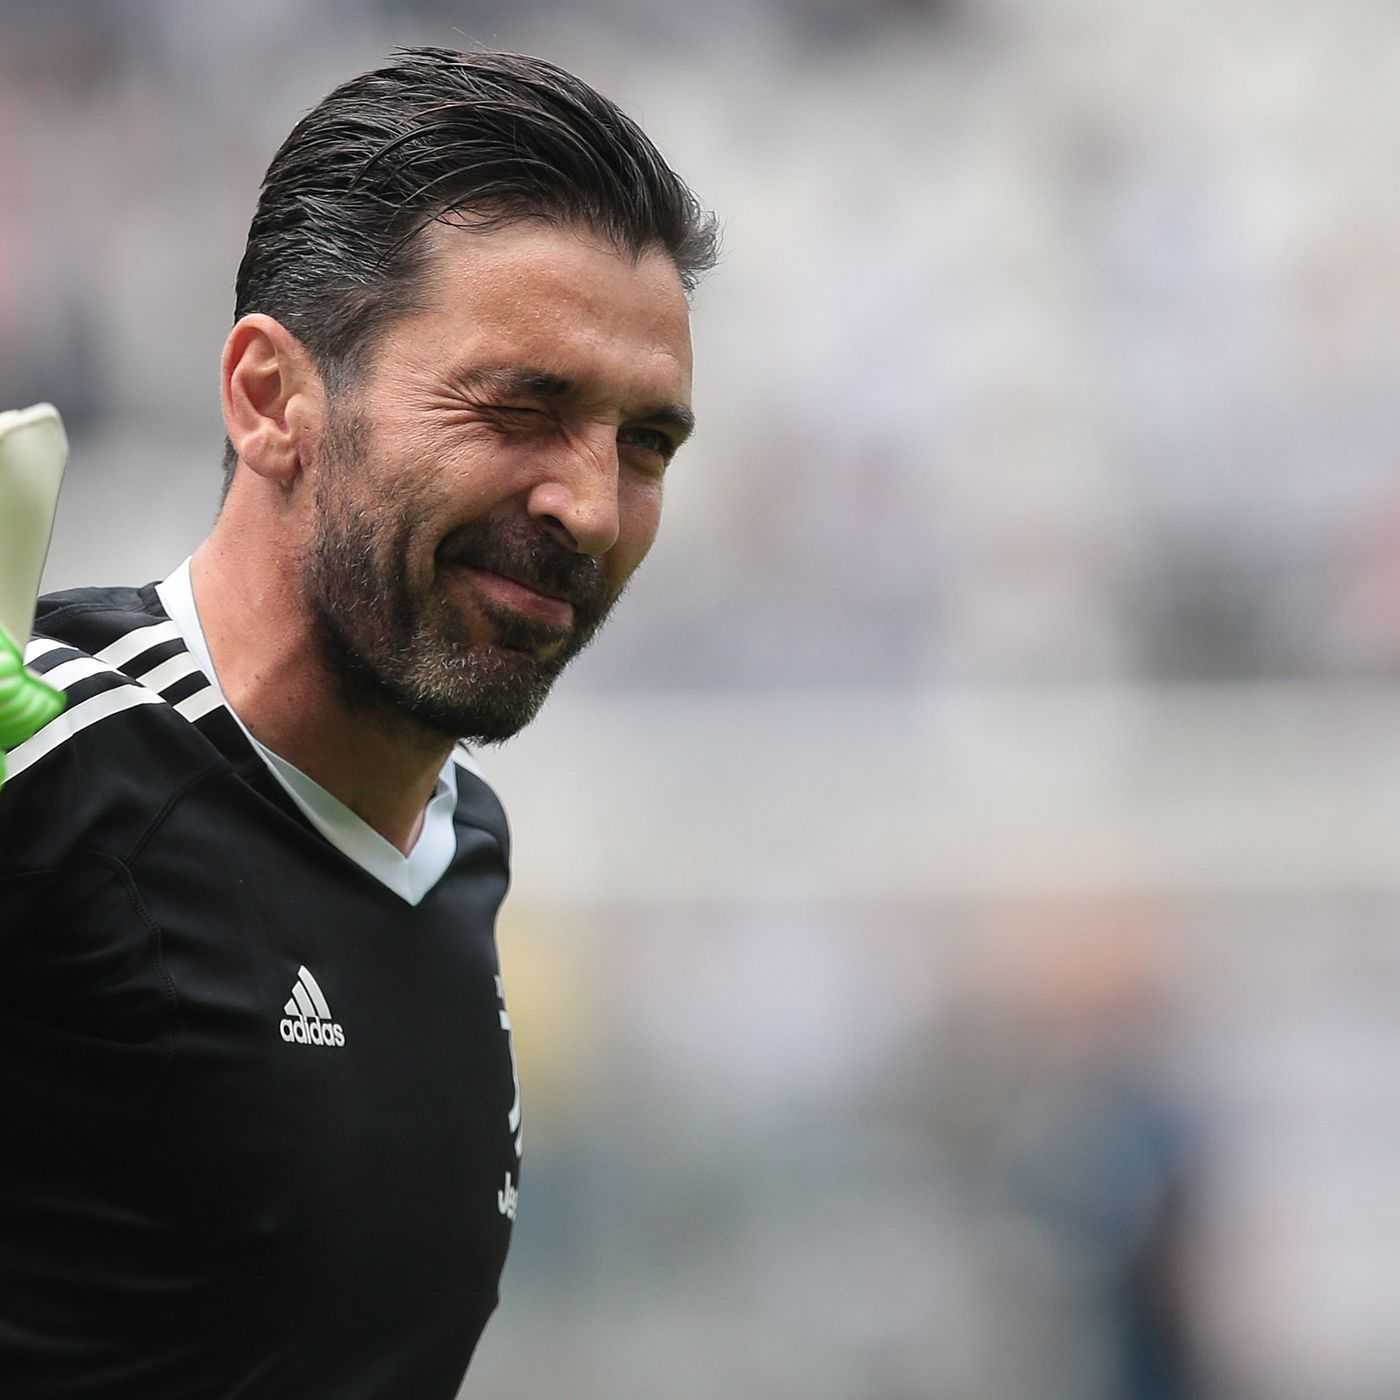 ea1ad0ceca6 OFFICIALLY OFFICIAL  Gianluigi Buffon signs with Paris Saint-Germain -  Black   White   Read All Over